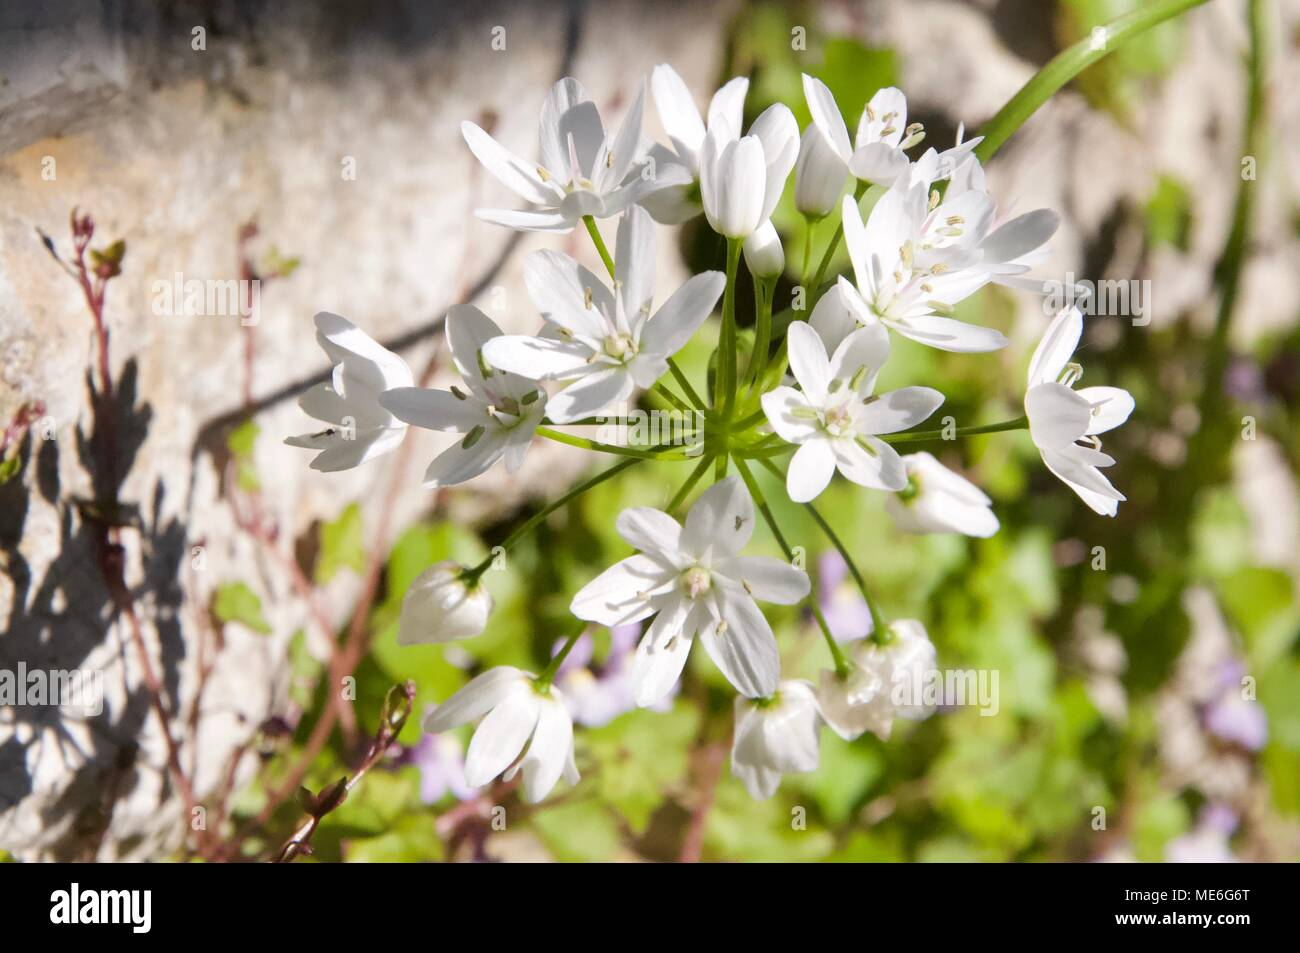 Wild White Flowers And Wall In The Back Stock Photo 180853312 Alamy